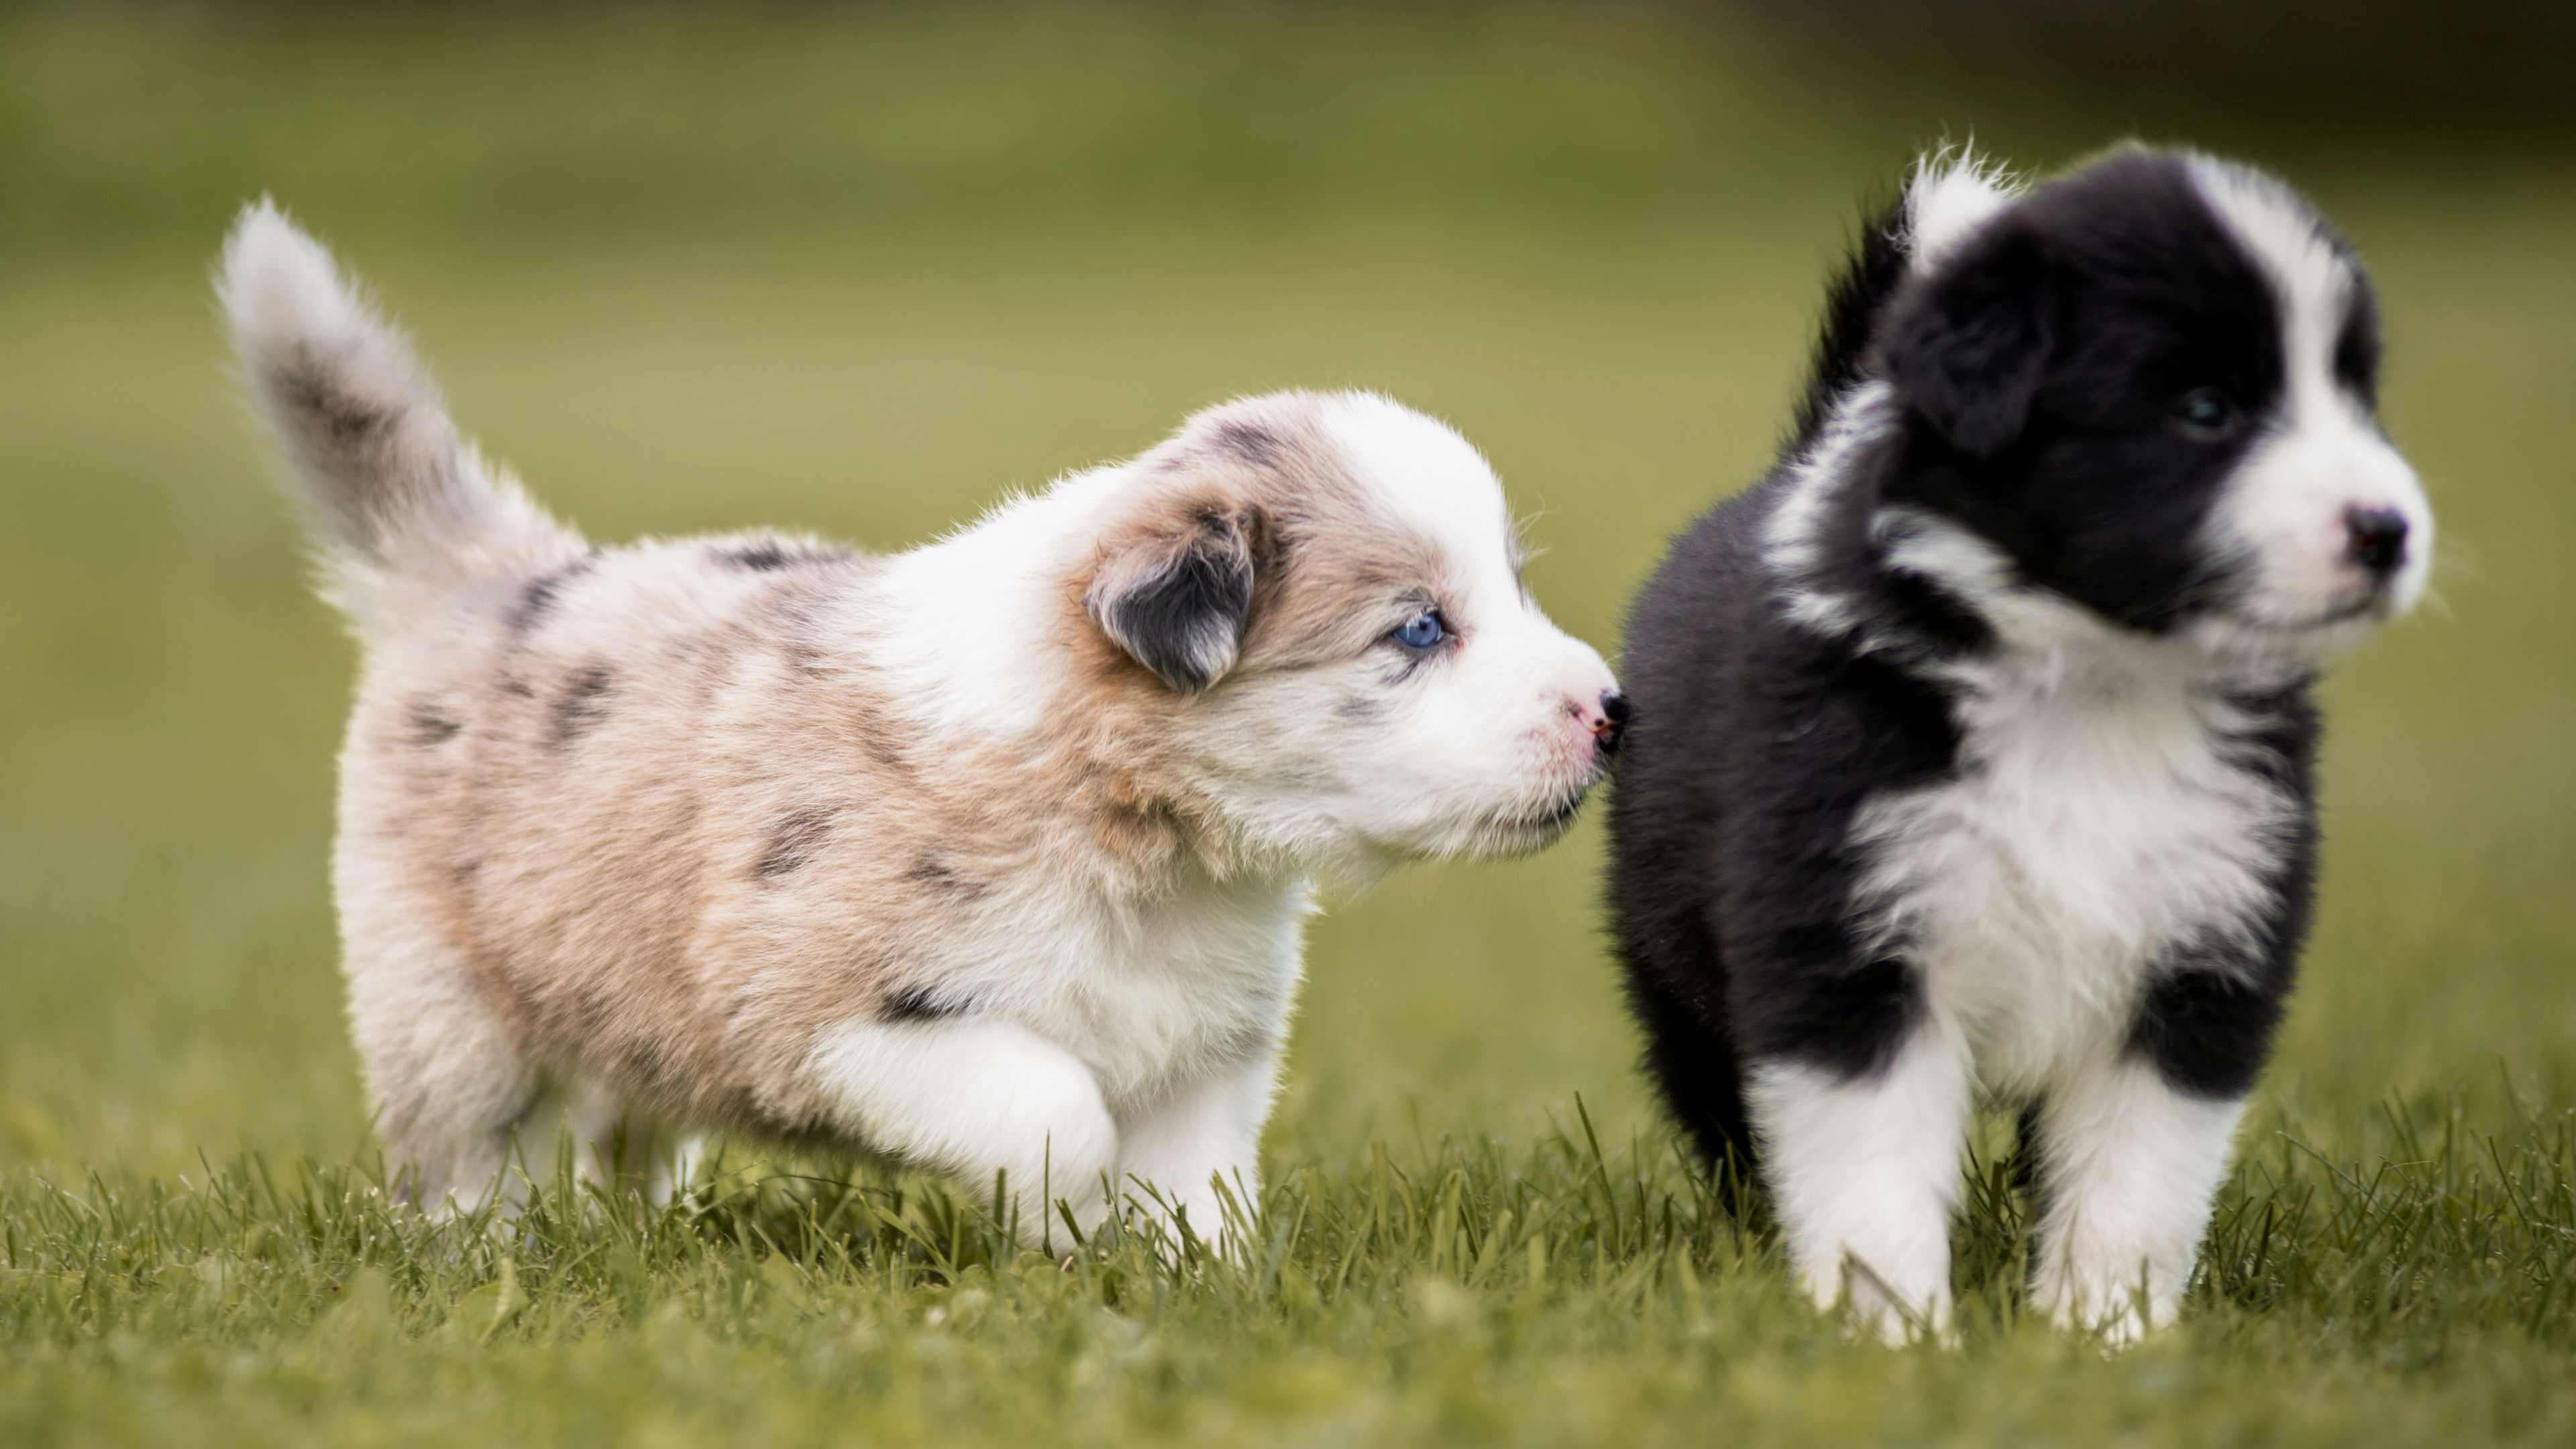 Border Collie puppies walking together outdoors in a garden